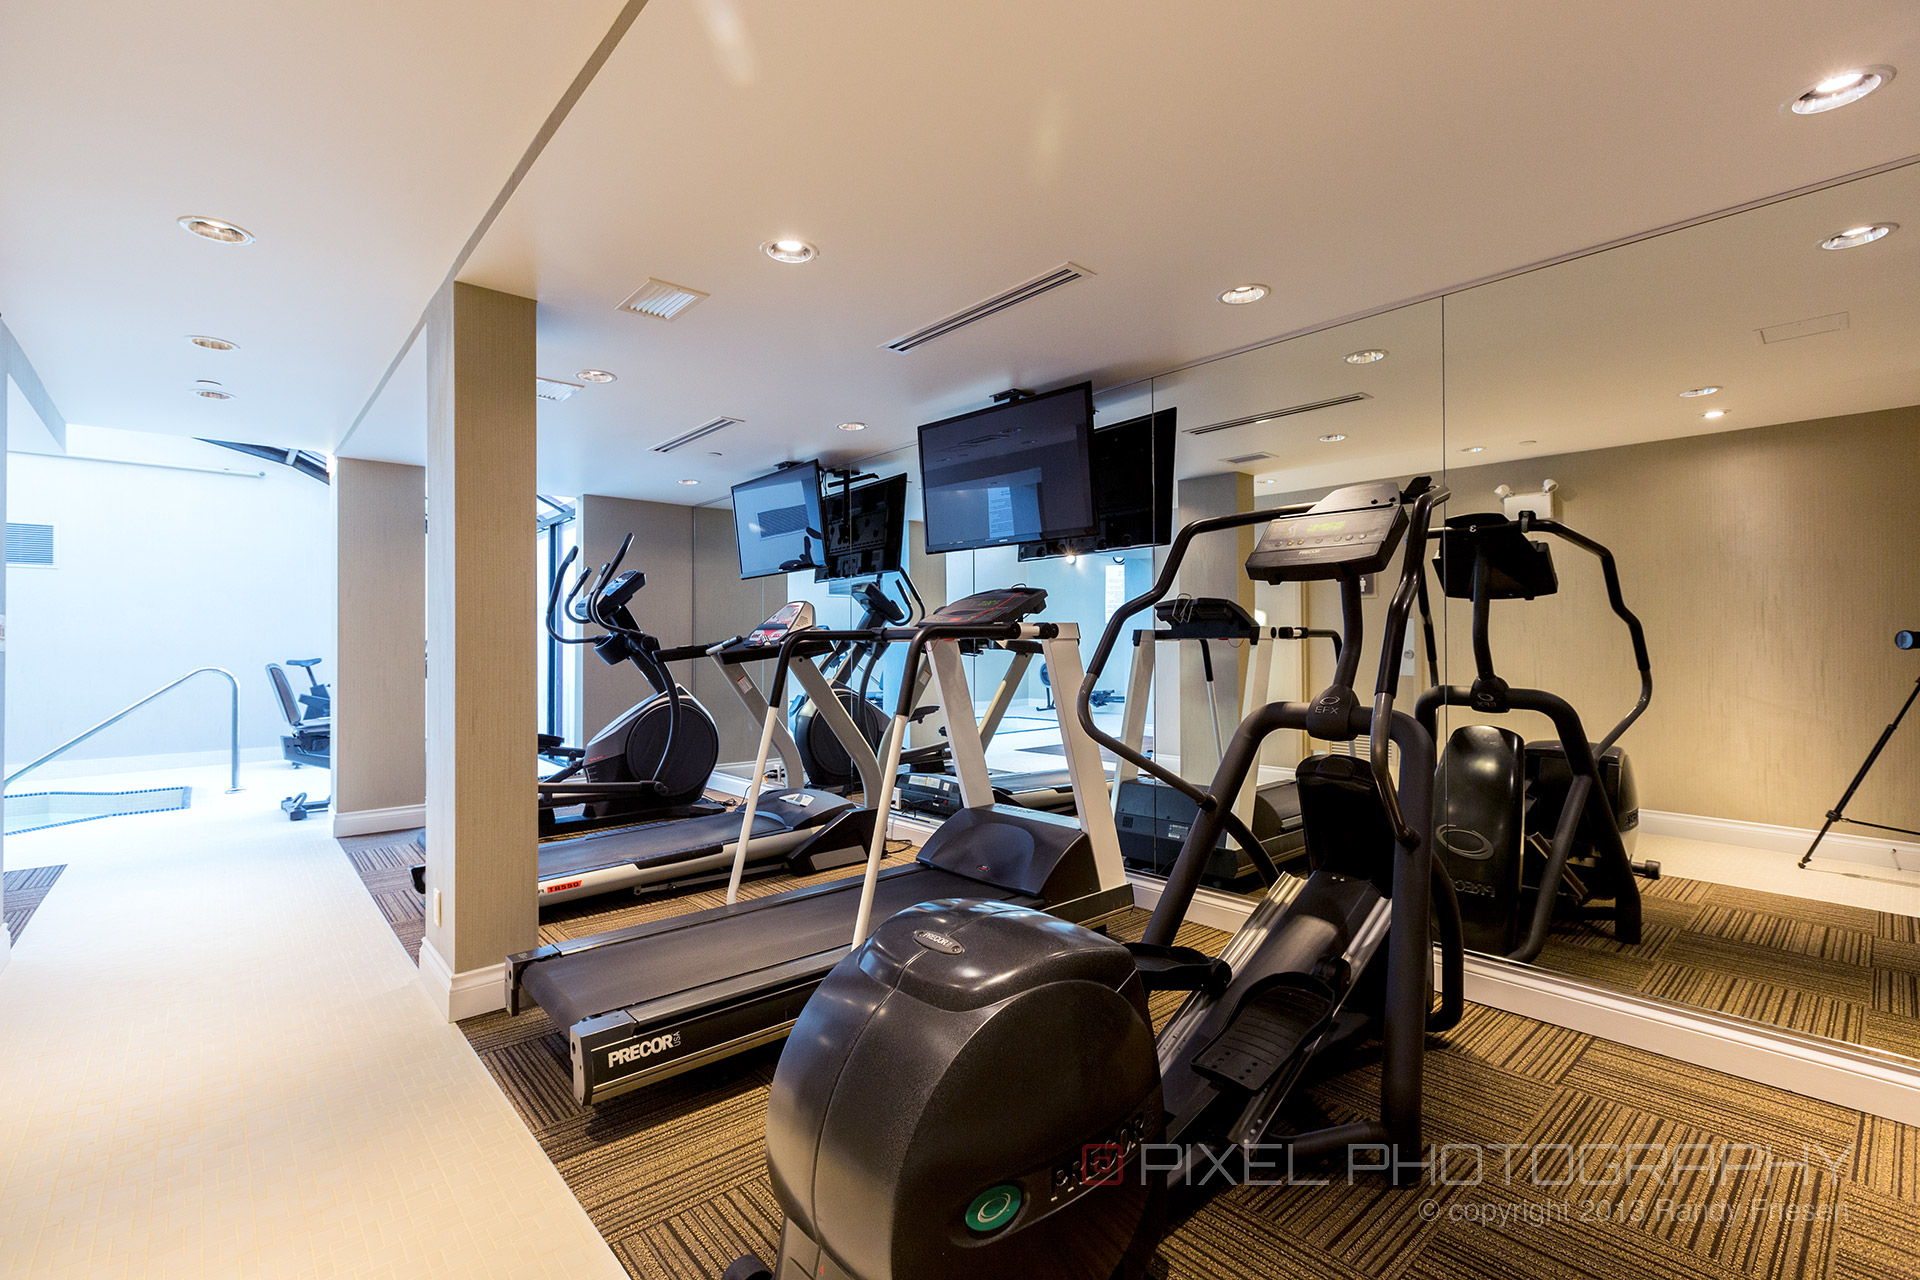 Granville island hotel health club photography panthermedia